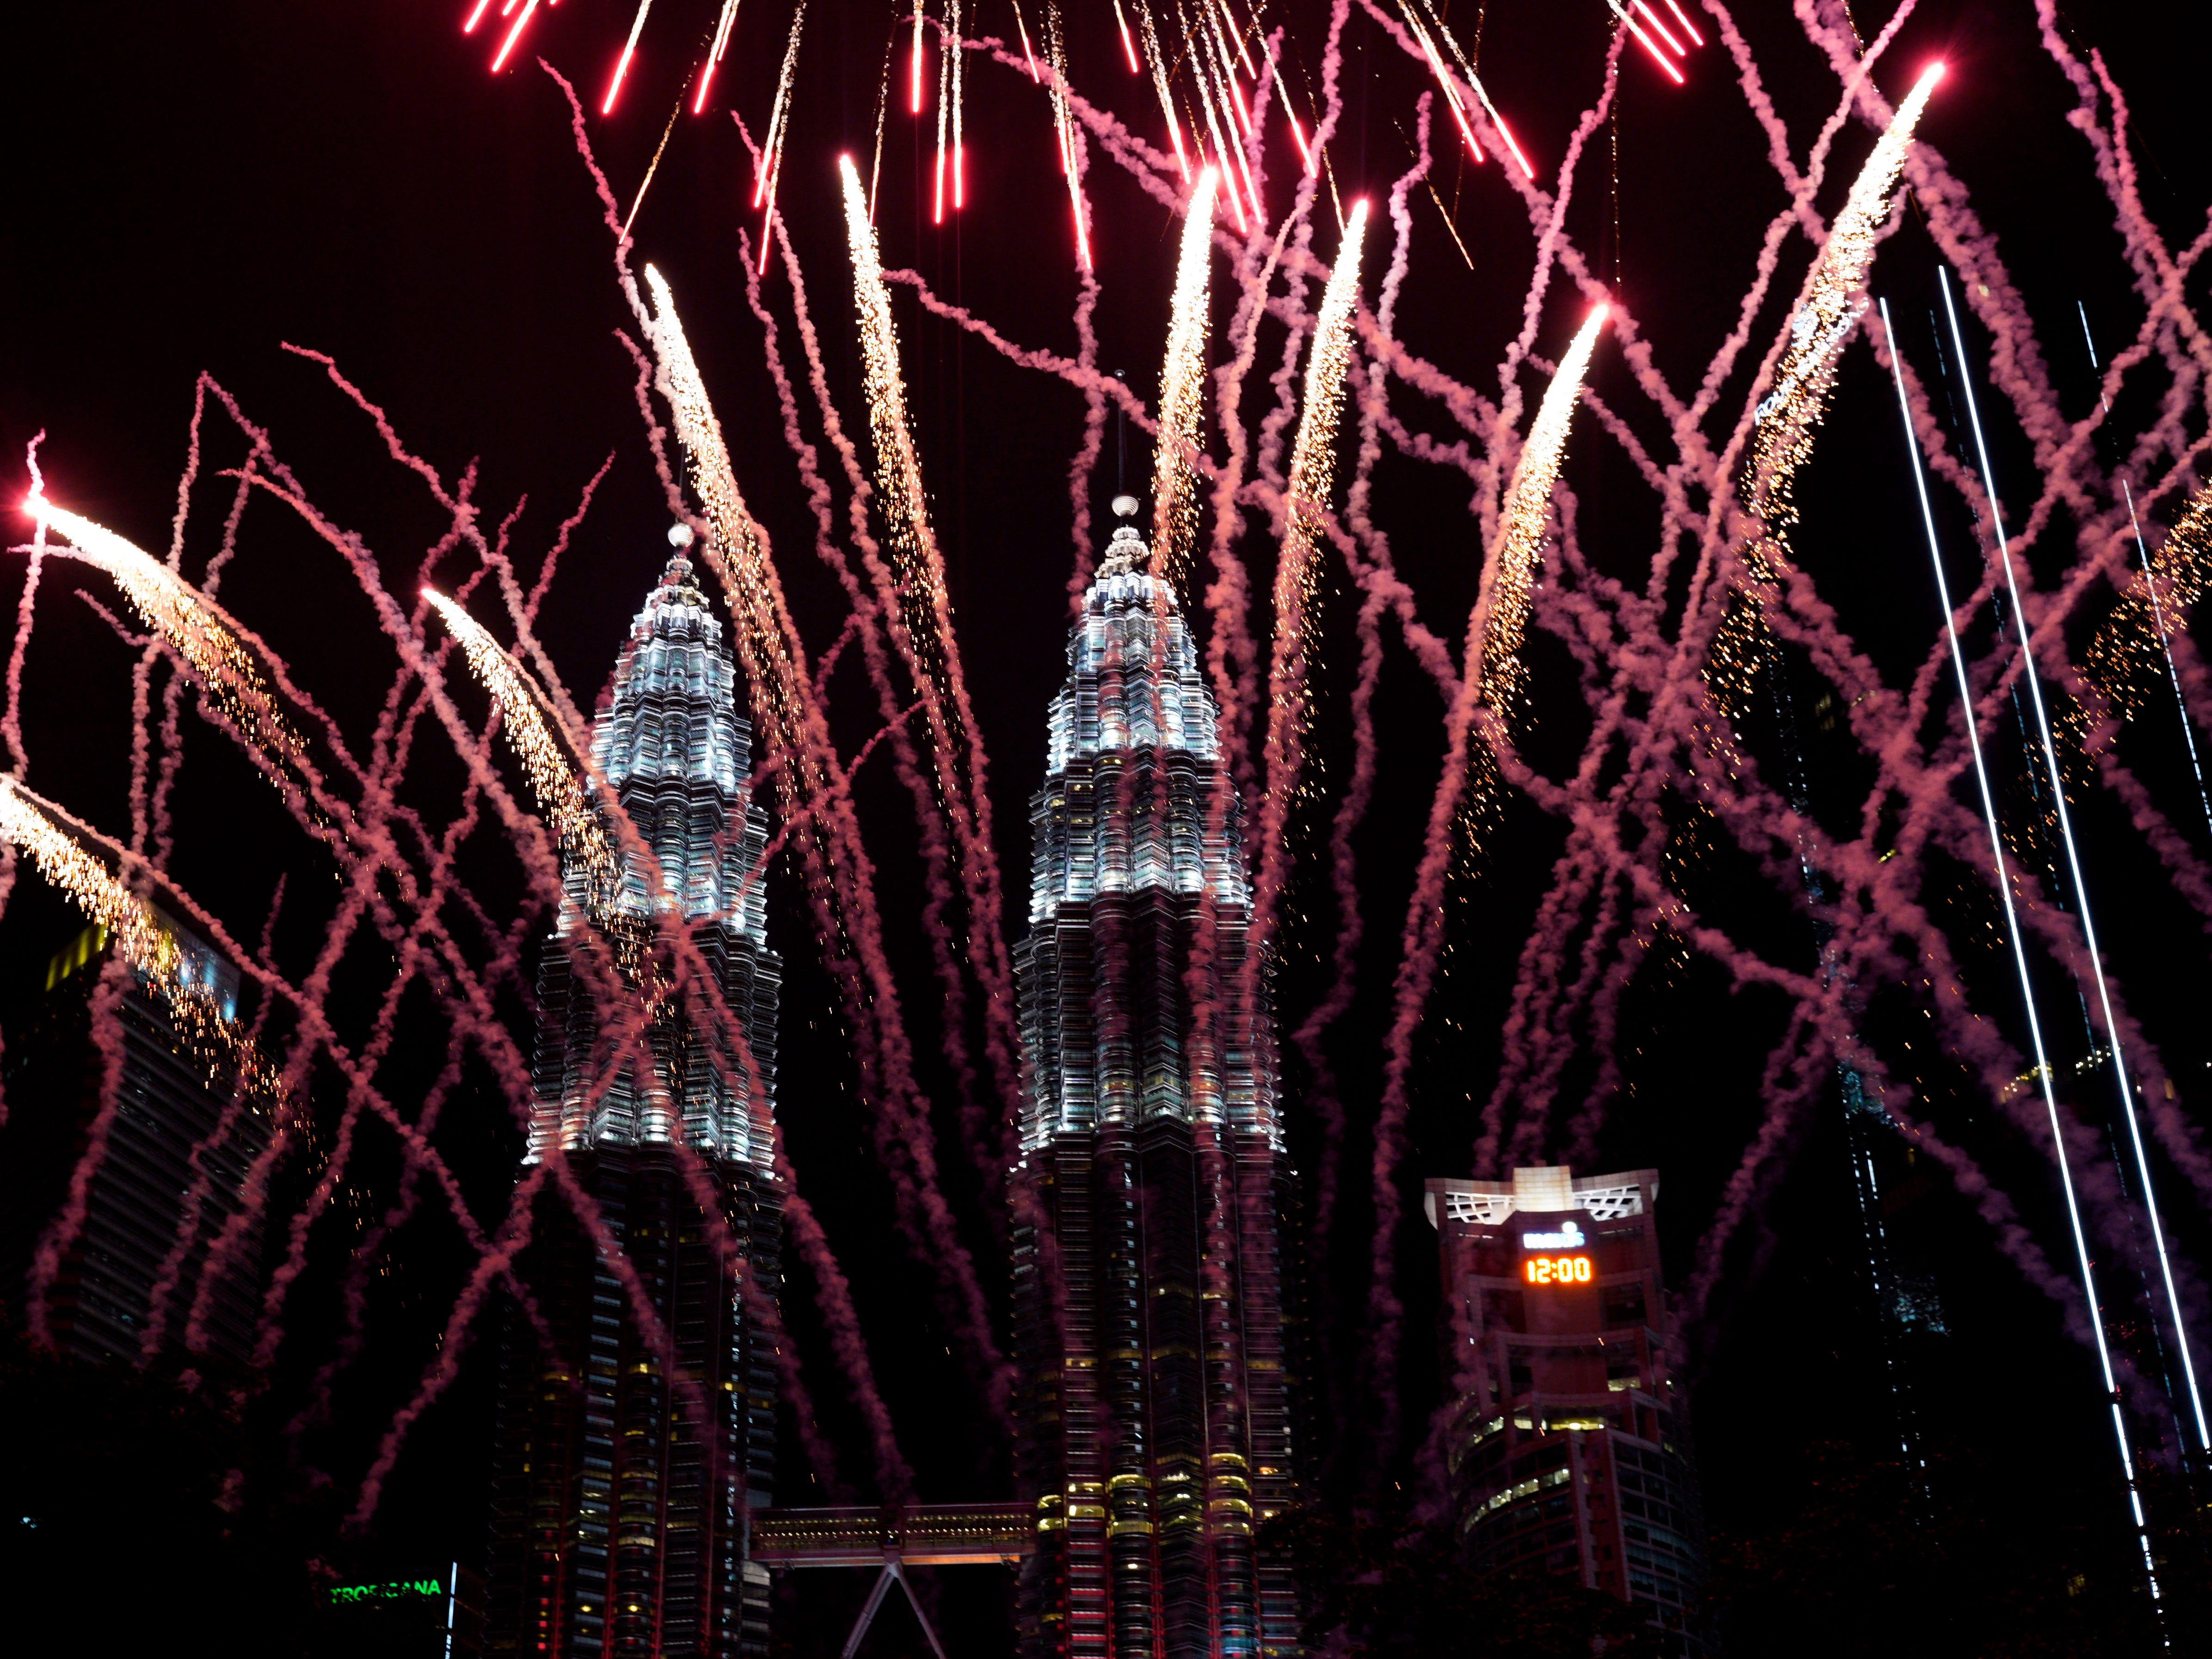 Fireworks explode in front of Malaysia's landmark building, the Petronas Twin Towers, during New Year's celebrations in Kuala Lumpur, Malaysia, on Jan. 1, 2019.